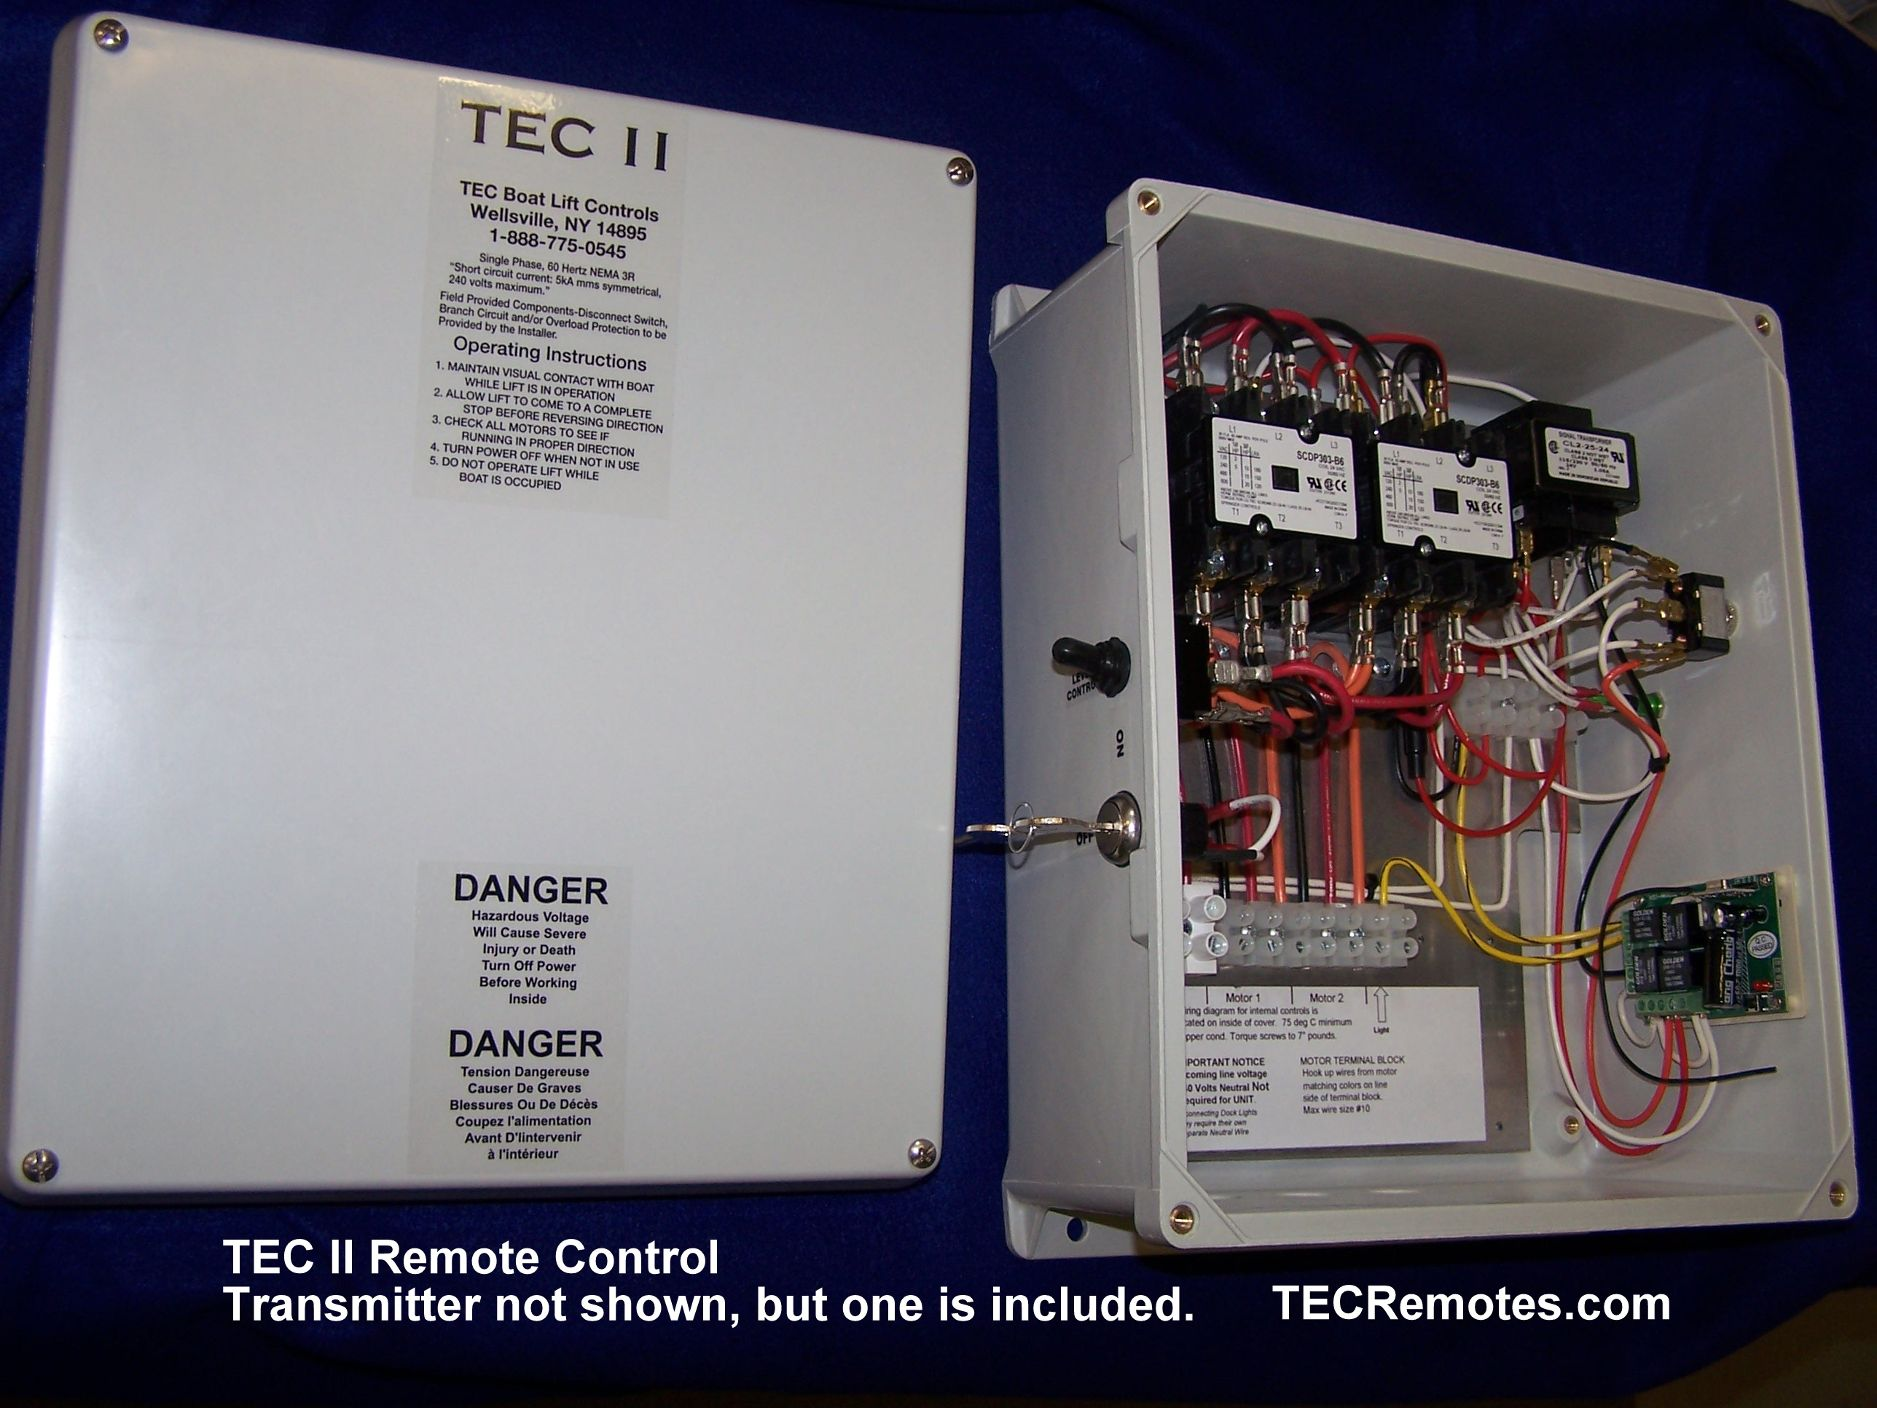 leeson motor wiring diagram how to read a boat lft remote controls, tec i, ii, 1-2, and iv